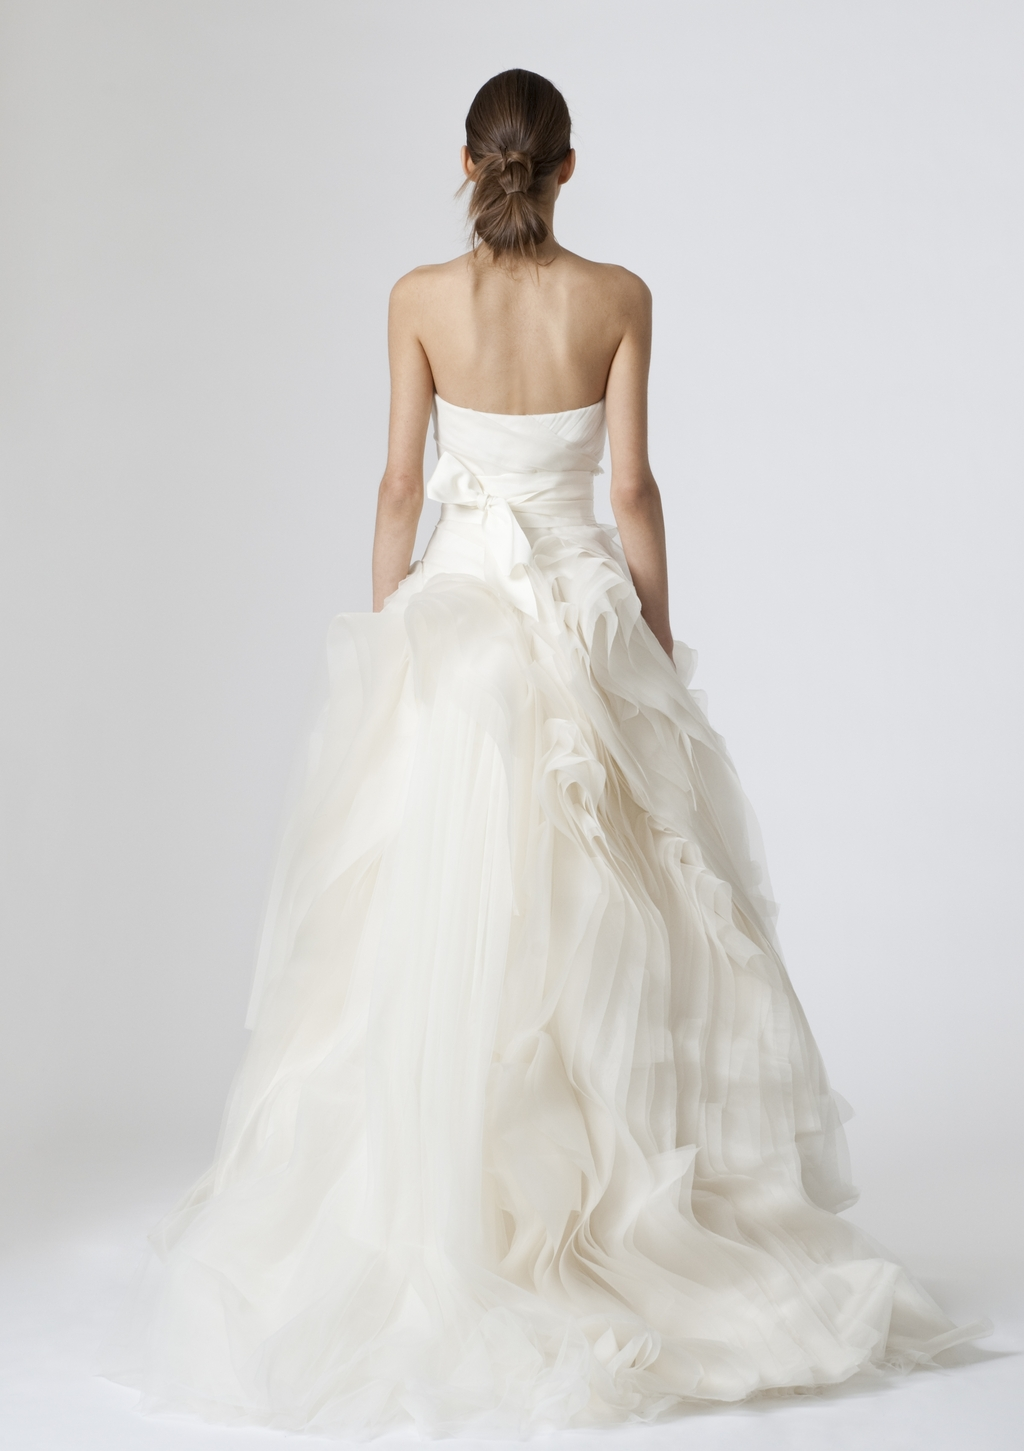 Vera-wang-wedding-dresses-spring-2010-12-back.full